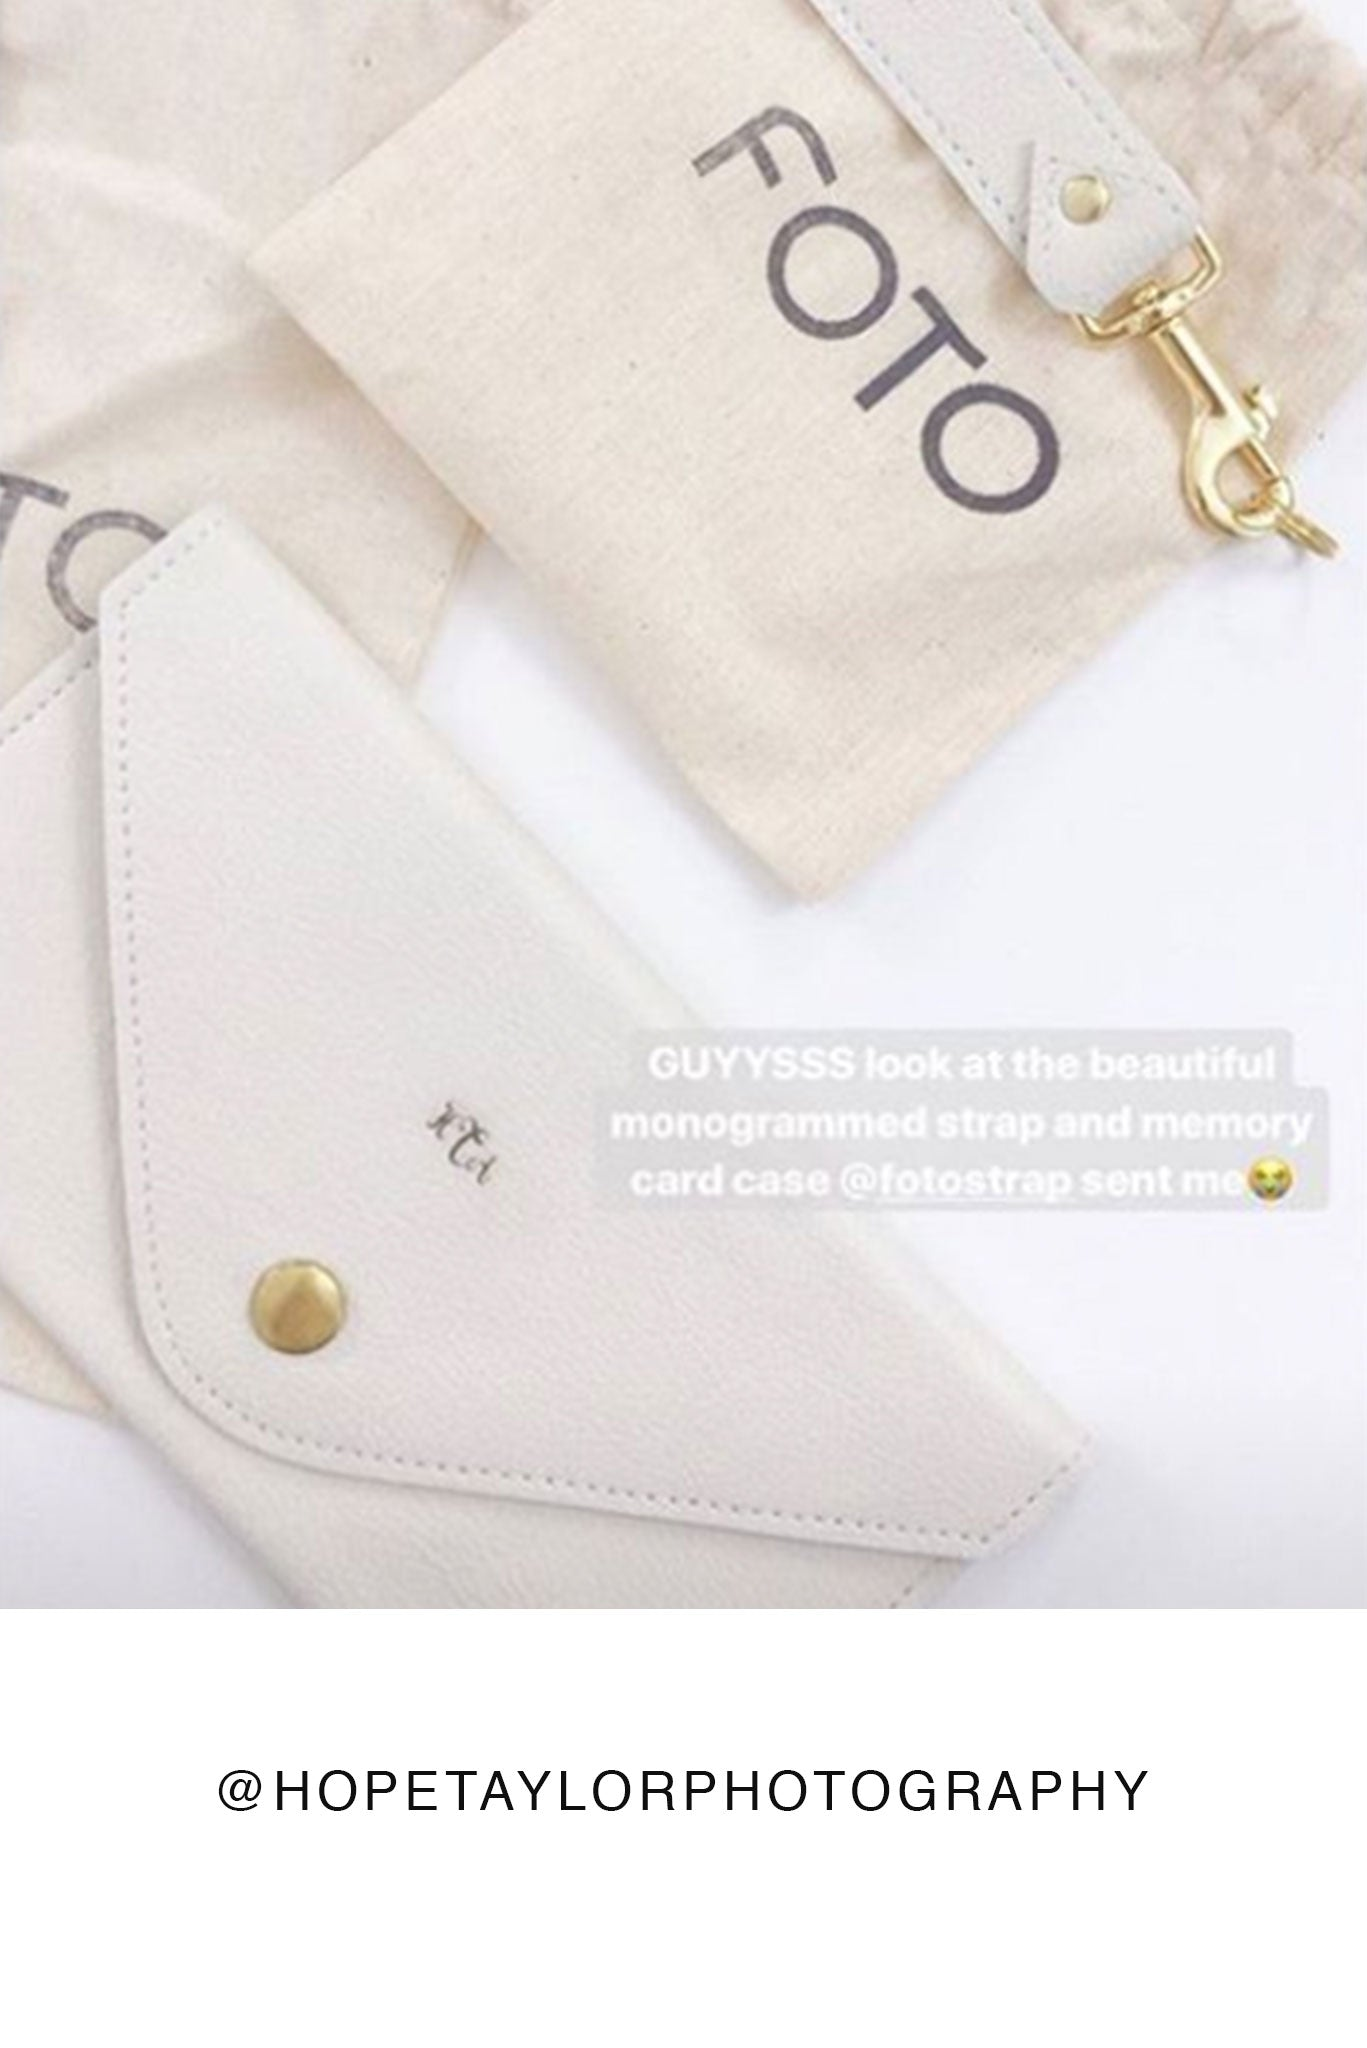 FOTO | Ivory Memory Card Wallet - an ivory pebbled leather SD and Compact Flash Memory Card holder that coordinates with our Ivory Designer Fotostrap camera strap and can be personalized with a monogram or business logo, making it the perfect gift for the photographer in your life!